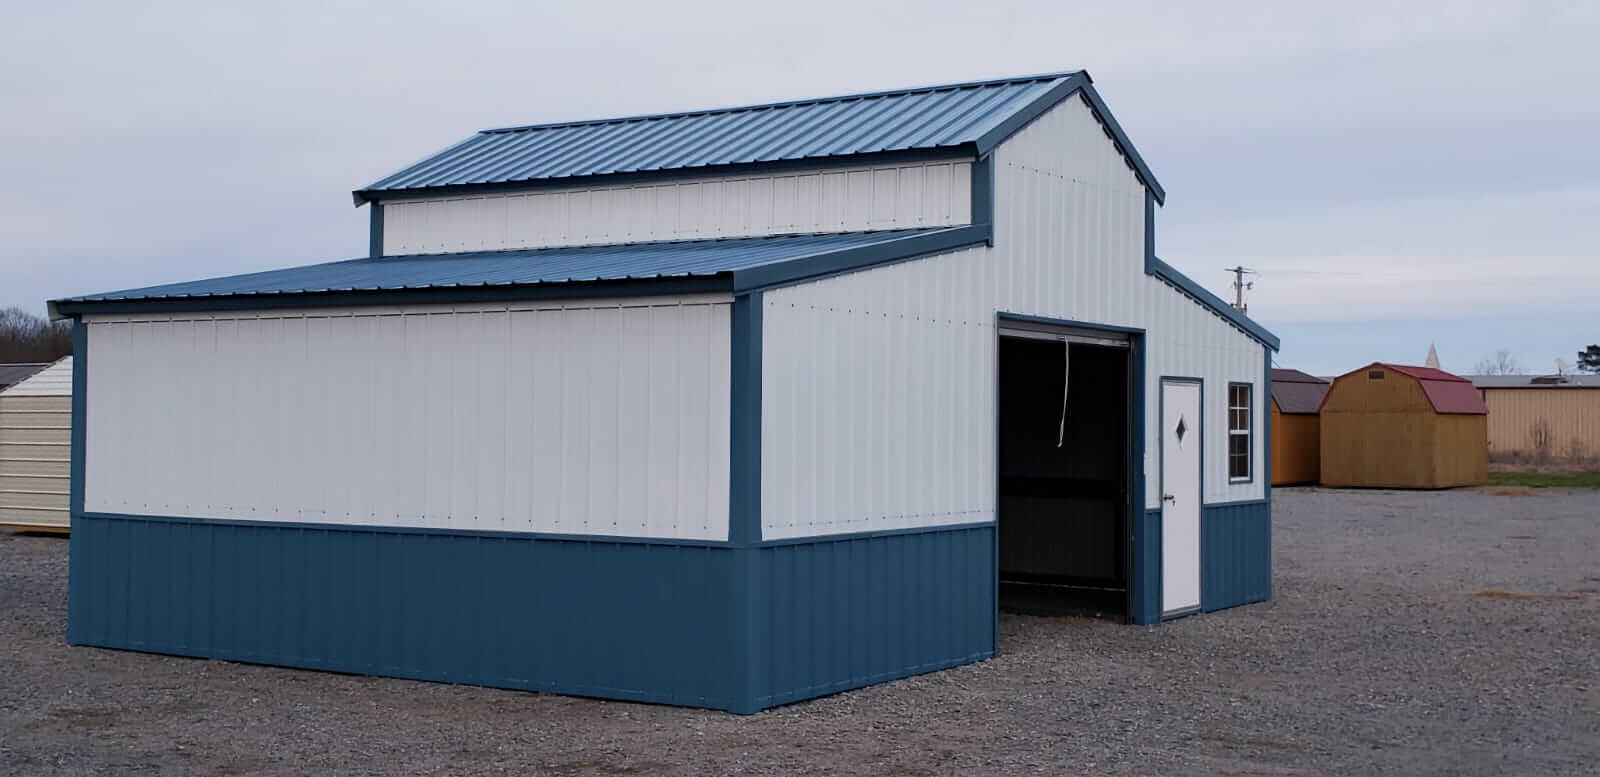 Metal Barn Kits >> Steel Barns Barns For Sale Metal Barn Kits At Lowest Prices